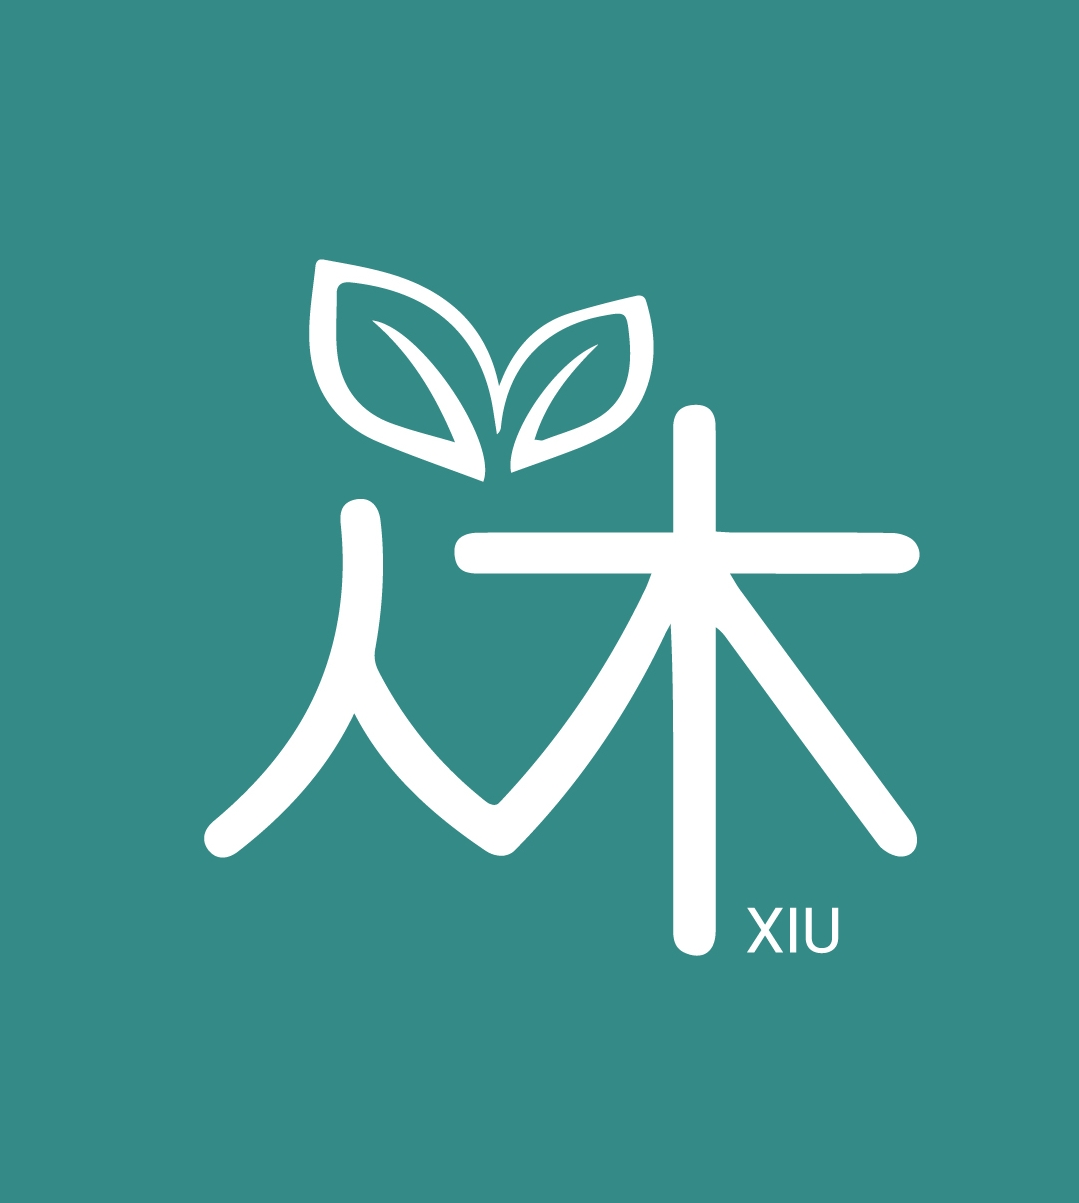 休 XIU Nature Connections